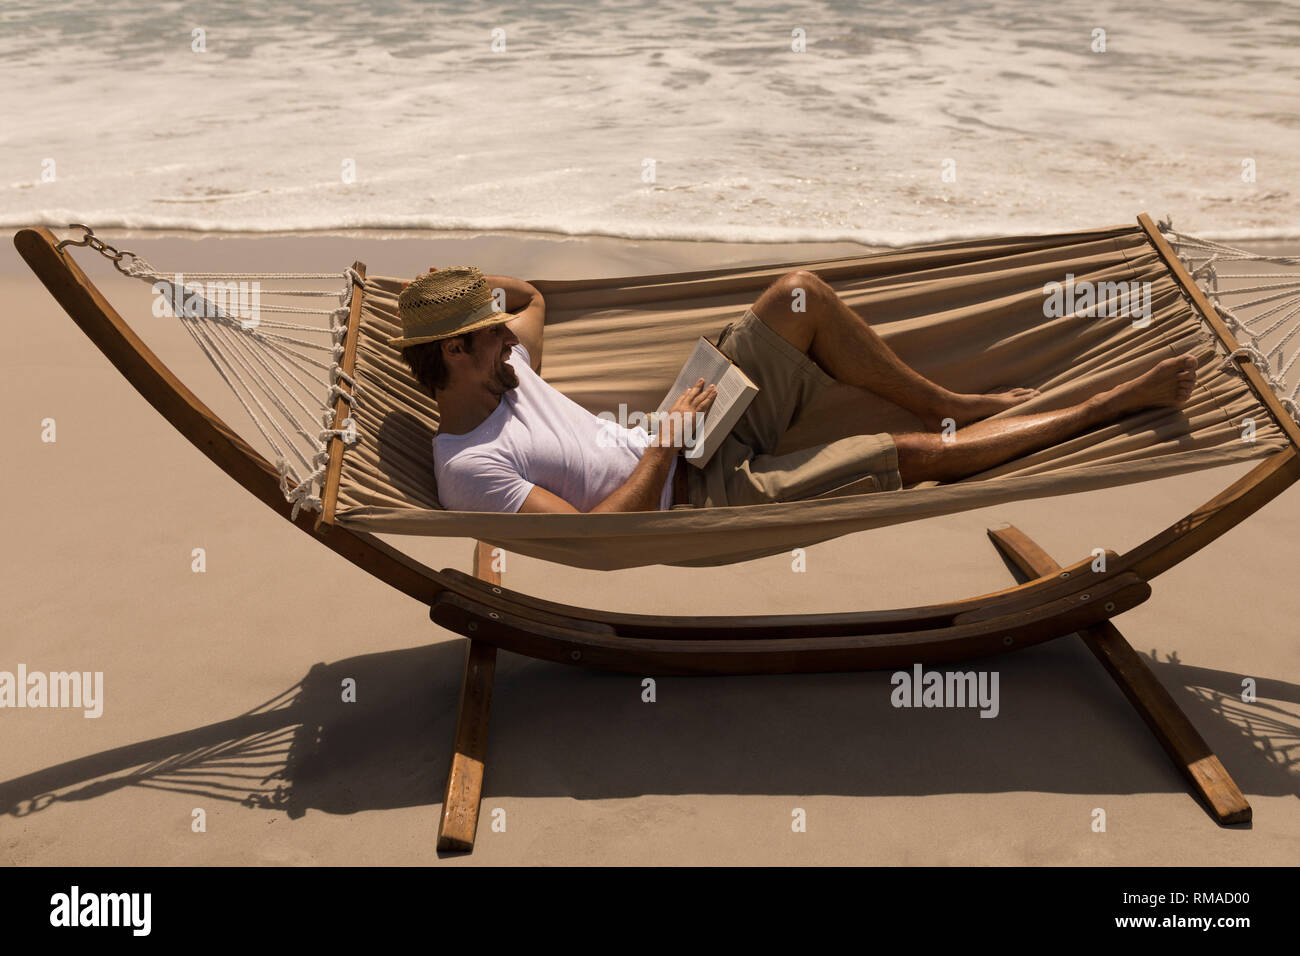 Young man with hat reading a book while relaxing on hammock at beach Stock Photo